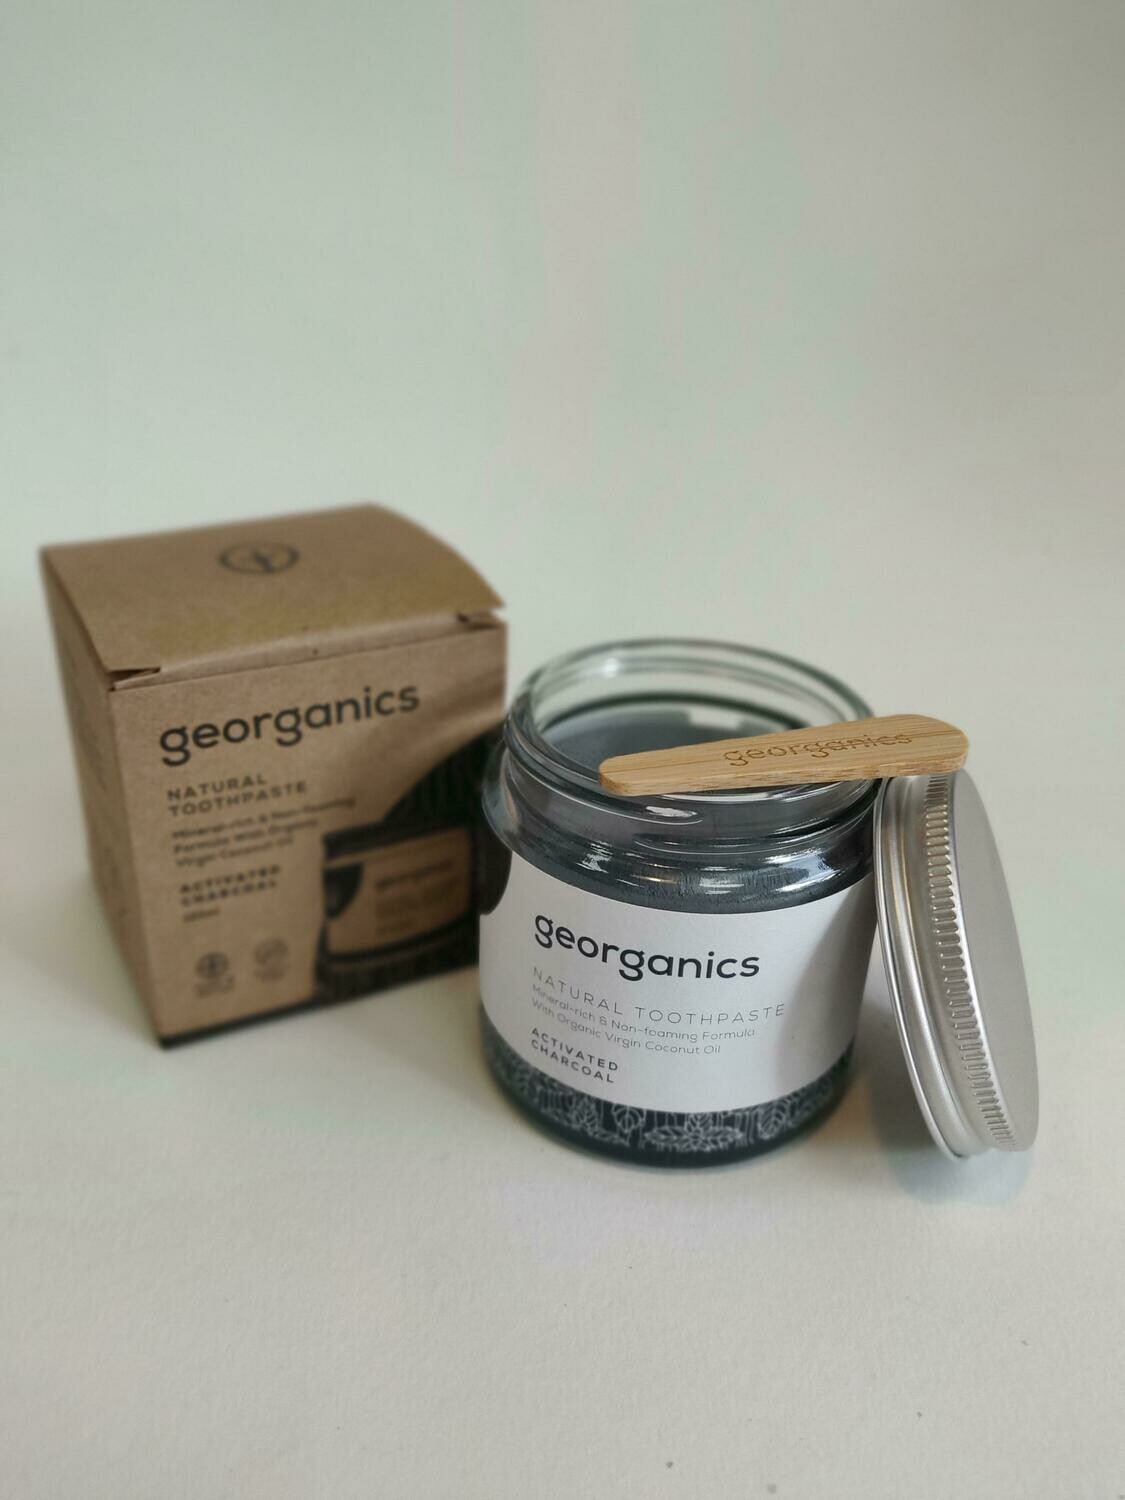 Georganics Natural Toothpaste Activated Charcoal 120g